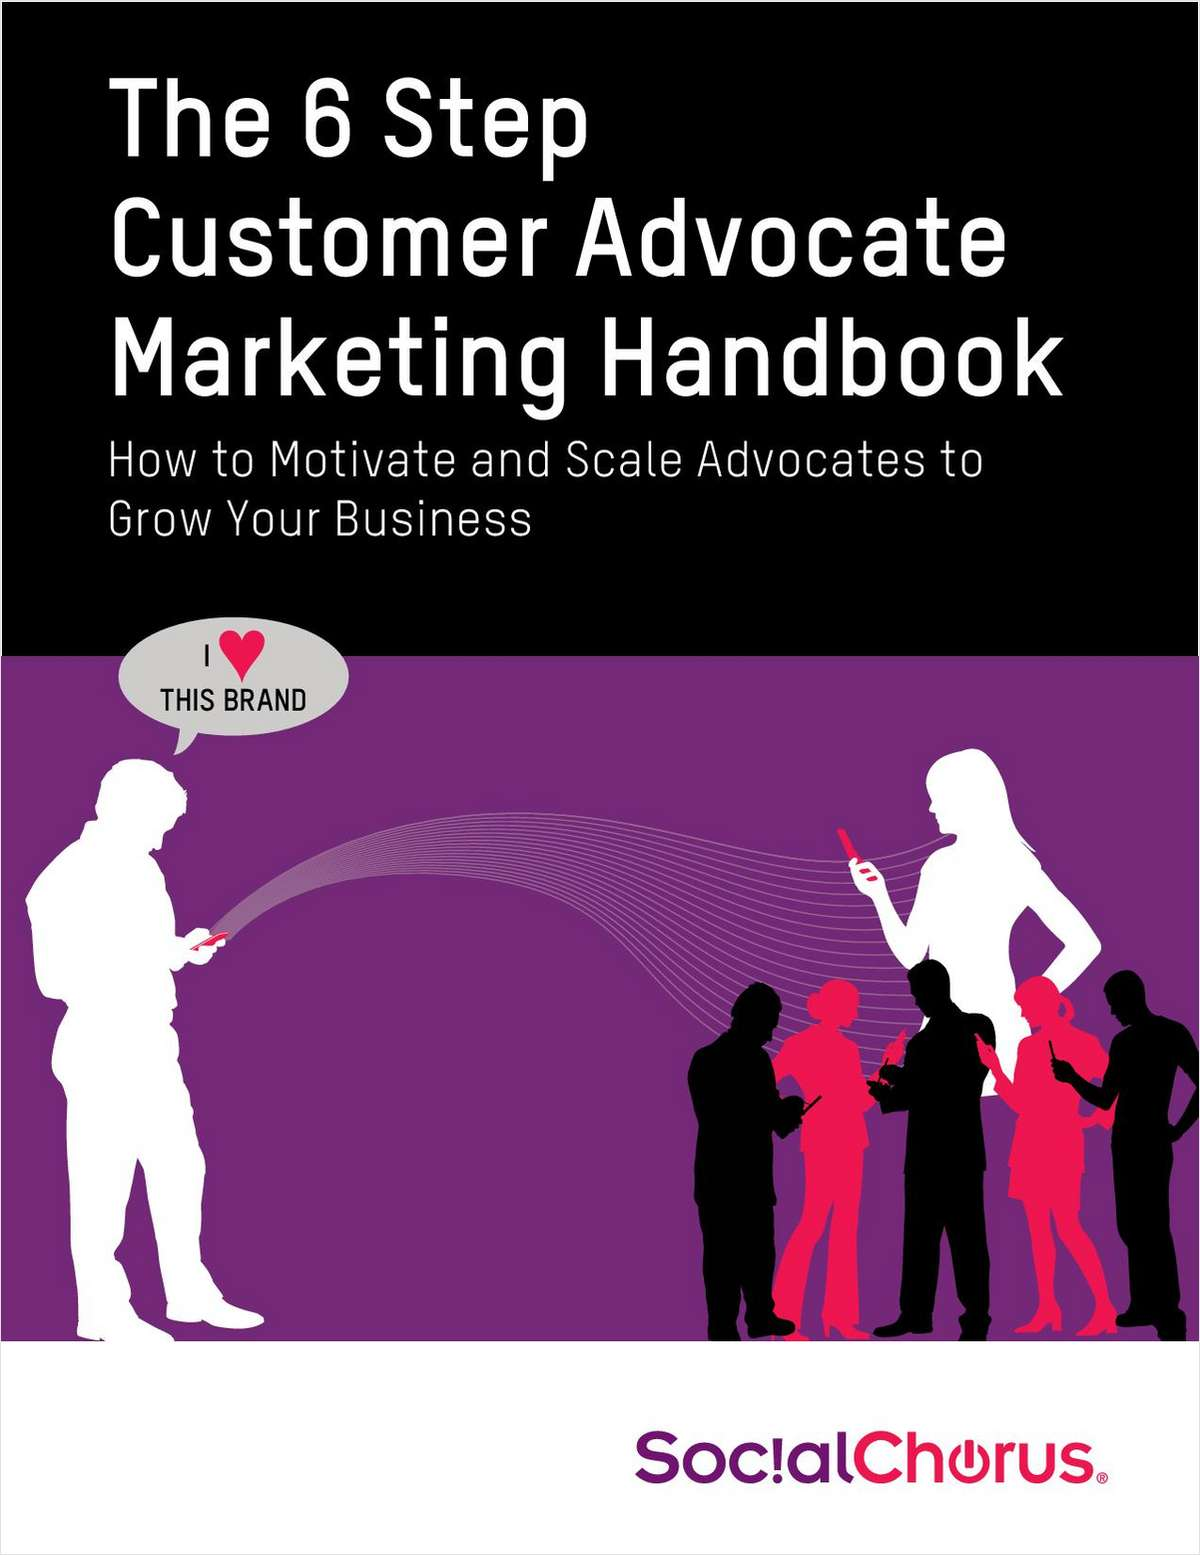 The 6 Step Customer Advocate Marketing Handbook